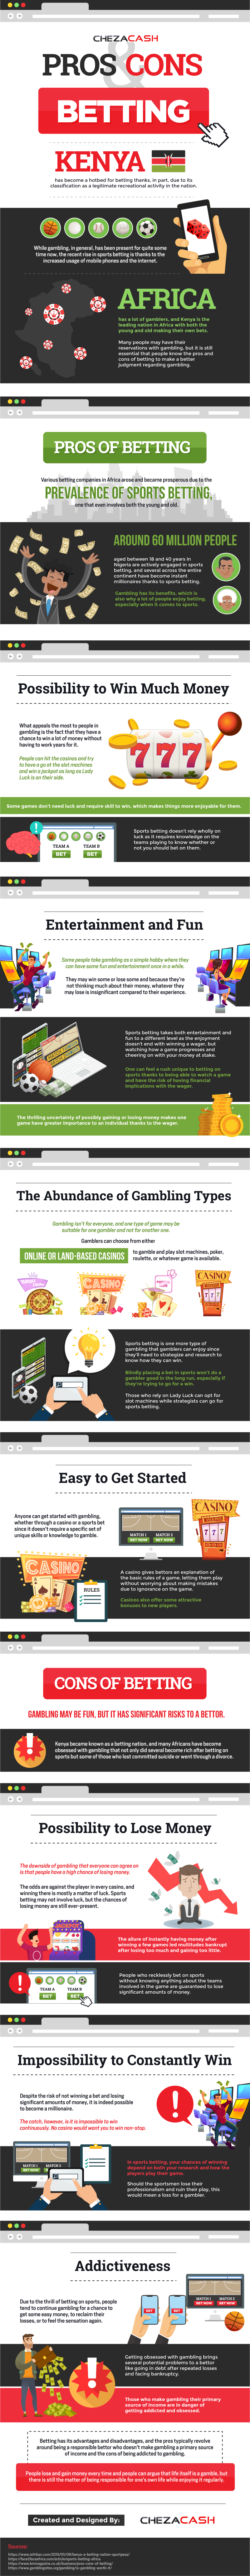 Pros and Cons of Sports Betting - Infographic